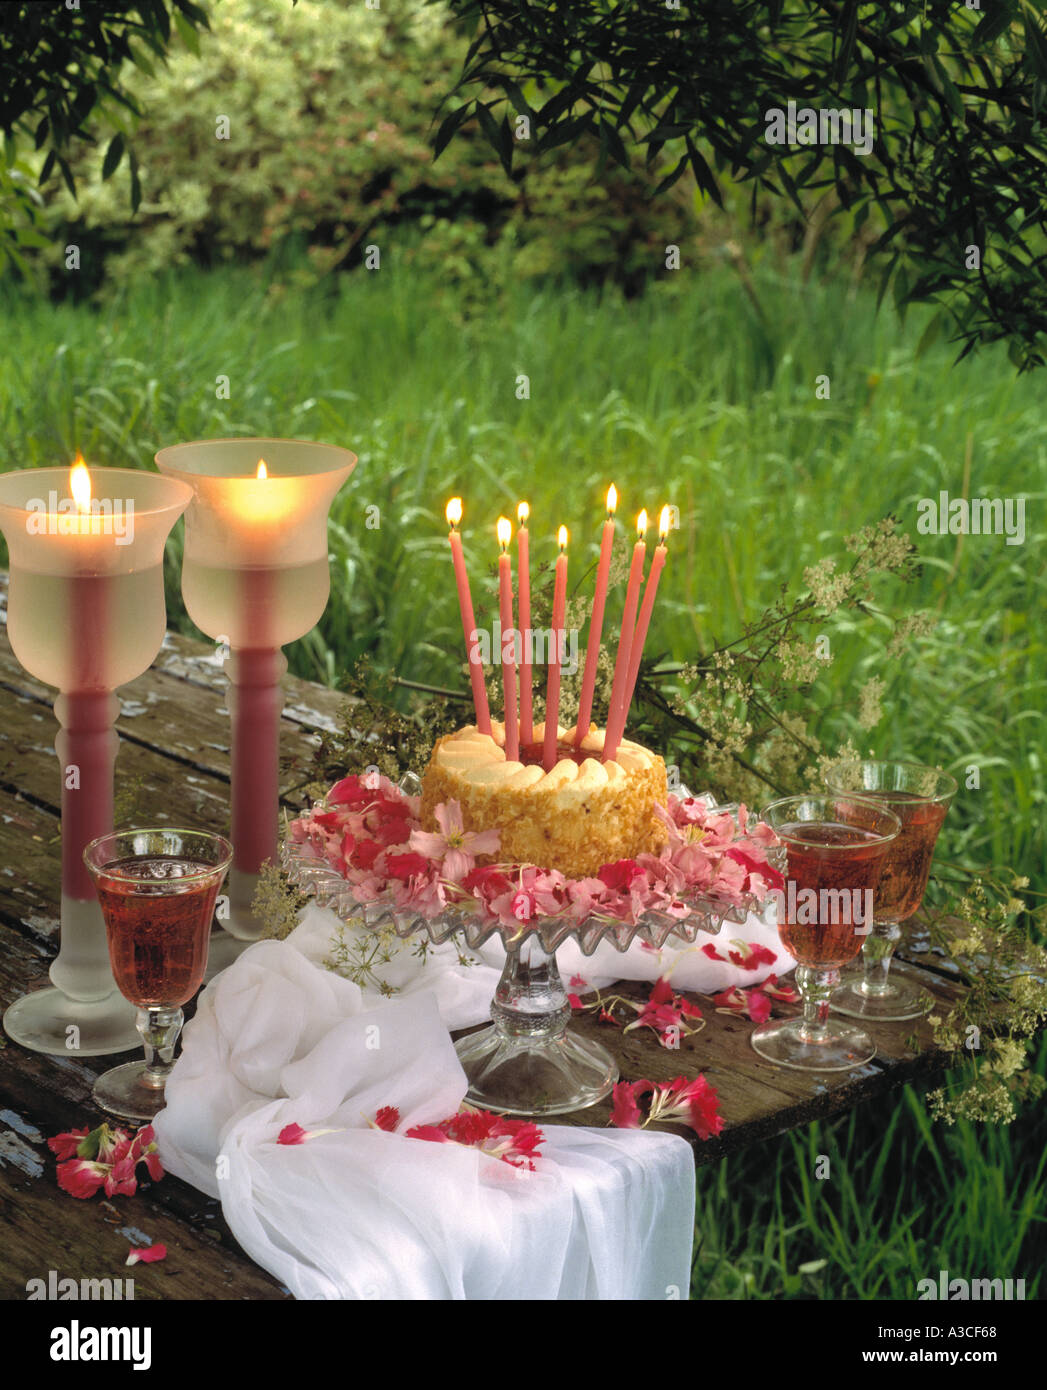 Tall Lighted Candles On Birthday Cake Glass Stand Beside In Glasses Garden Table